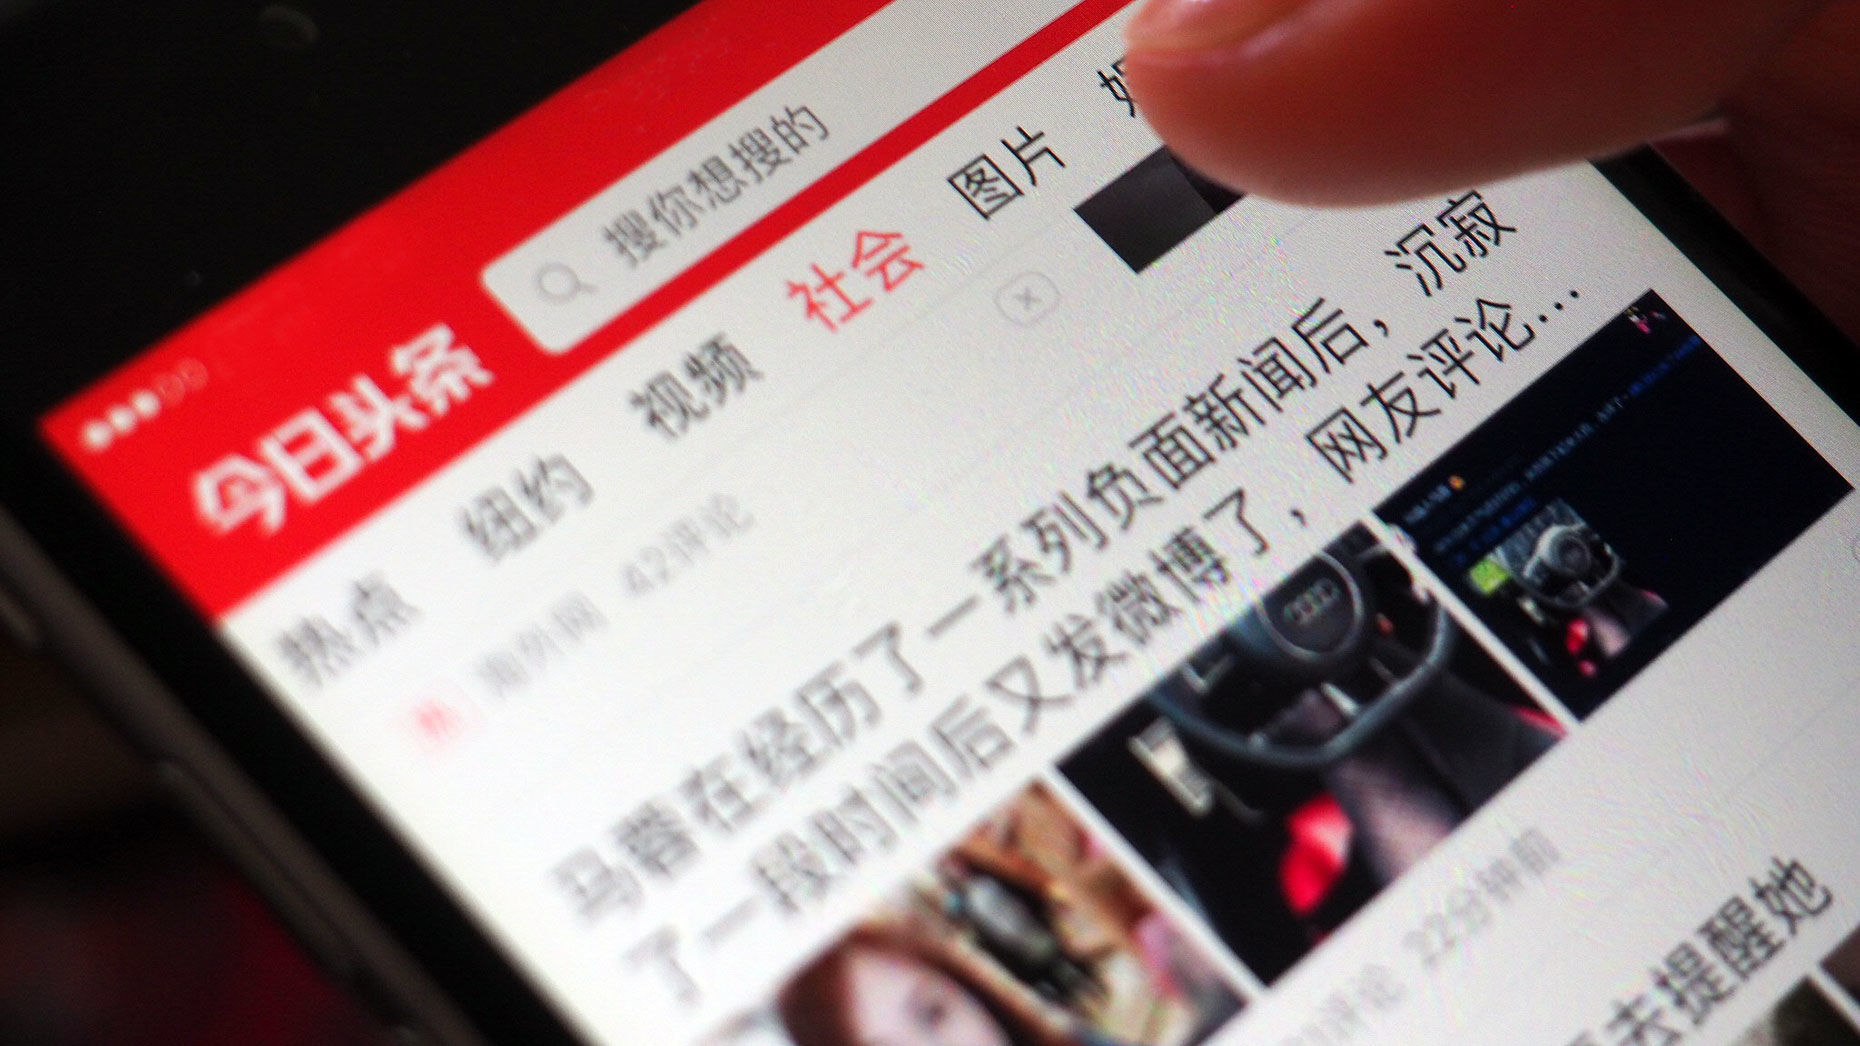 The Toutiao app on a smartphone. Photo: Mike Sullivan